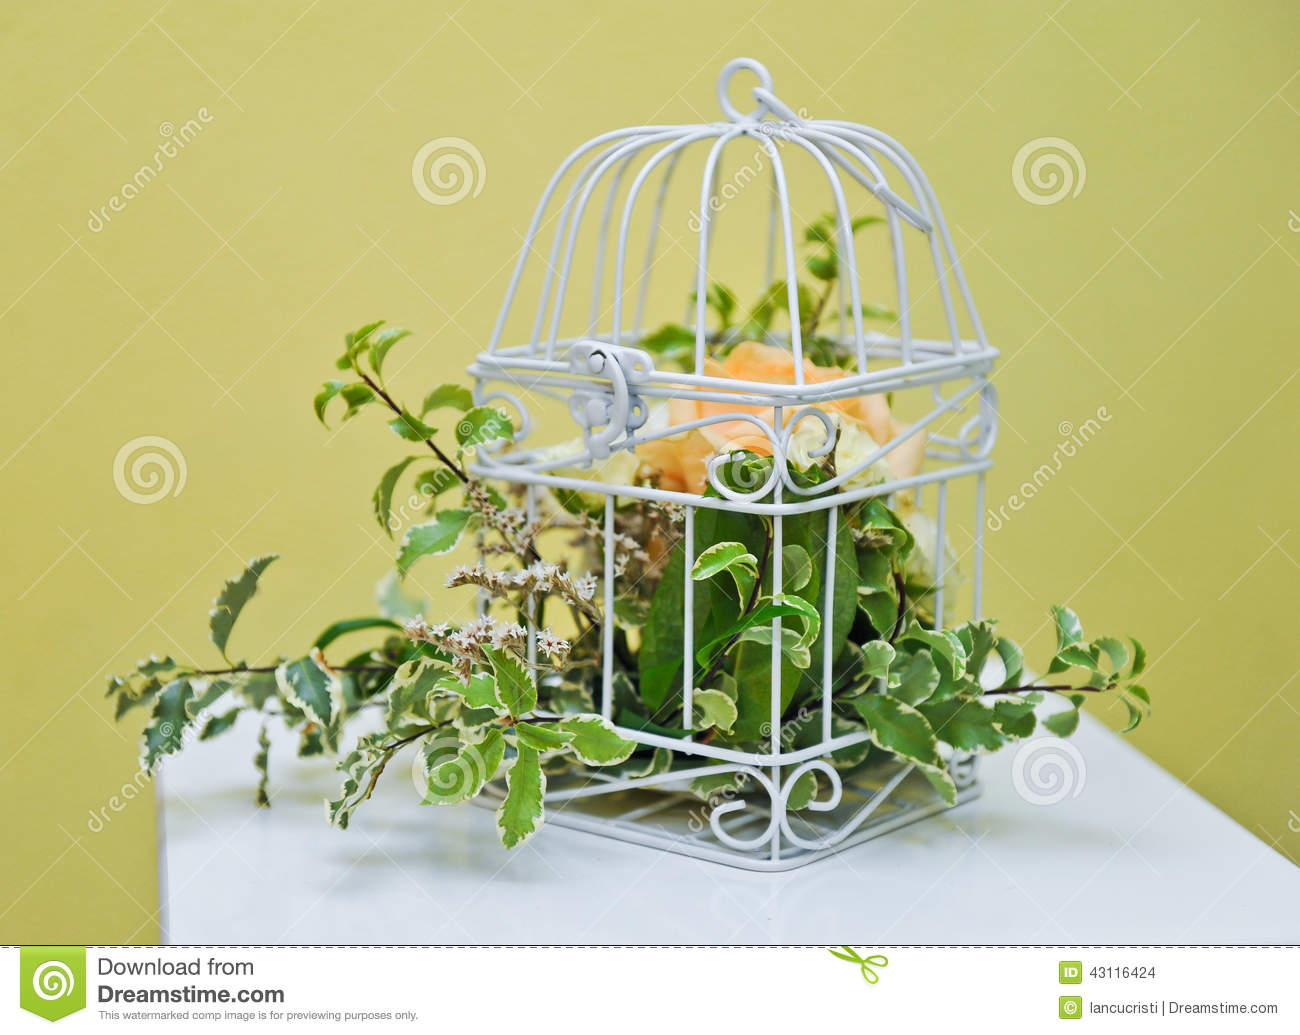 Decoration with green plant in a bird cage stock photo for Photo decoration